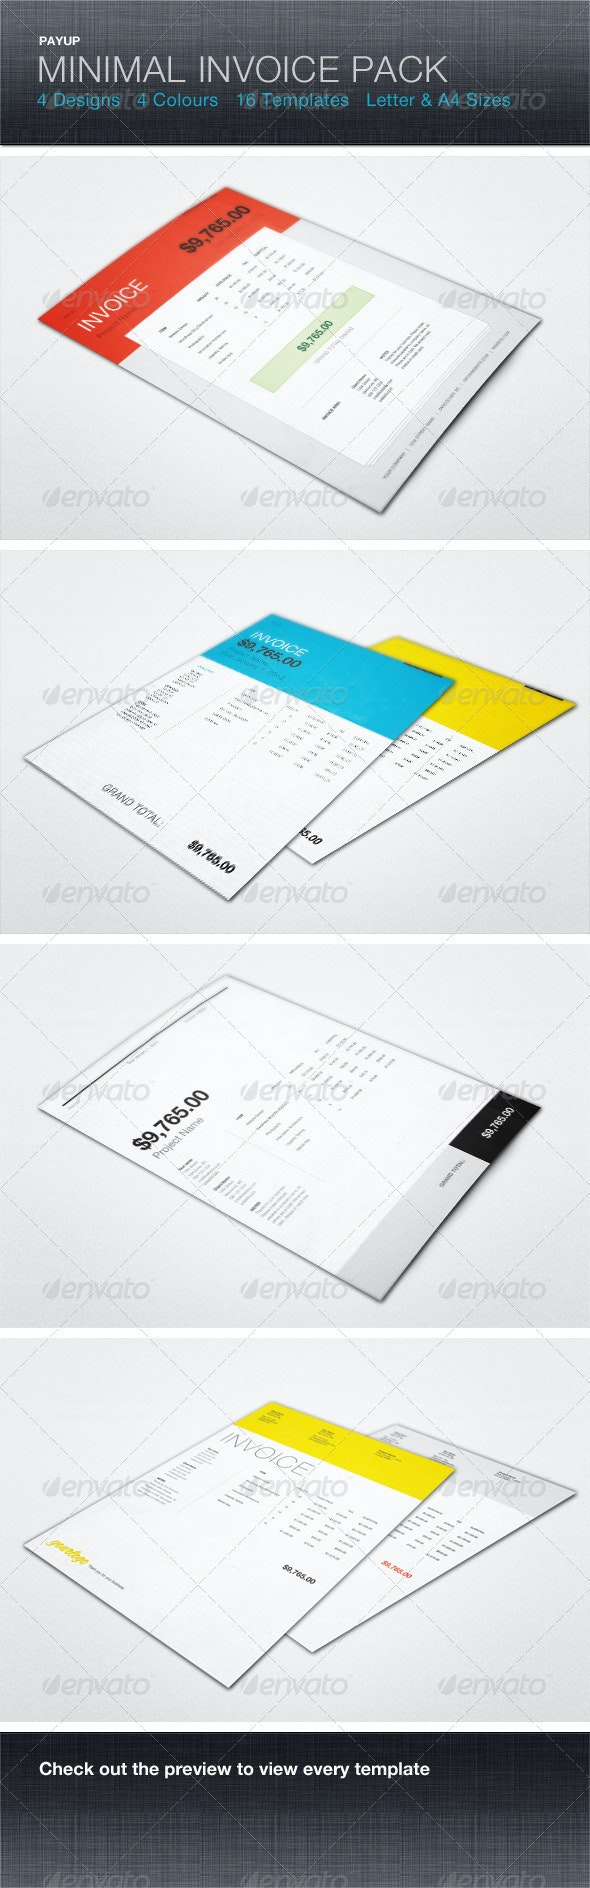 PayUp Minimal Invoice Template Pack - Proposals & Invoices Stationery